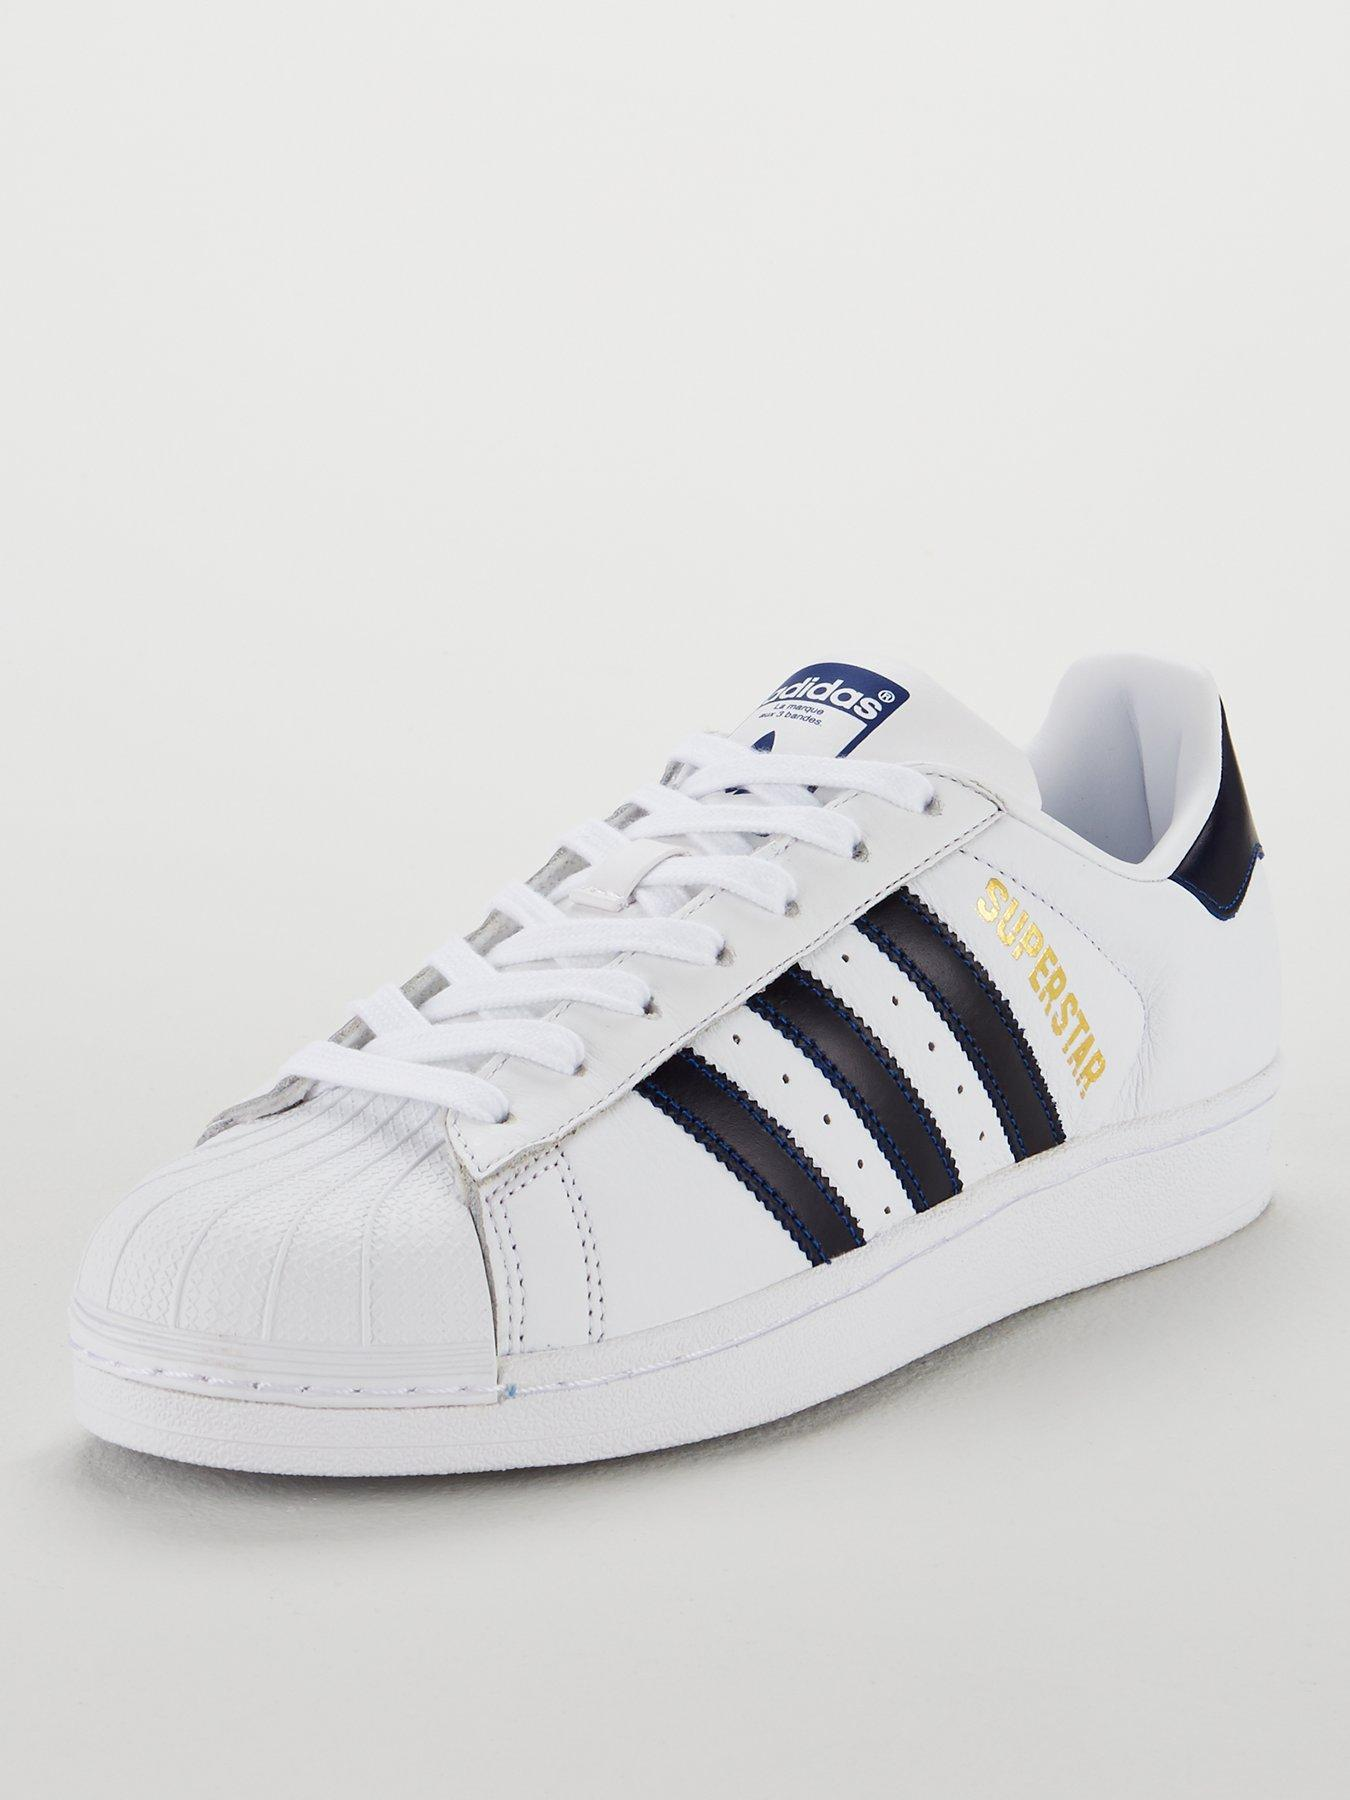 Jewellery UK,Men Adidas Superstar Ii Black White Shoes